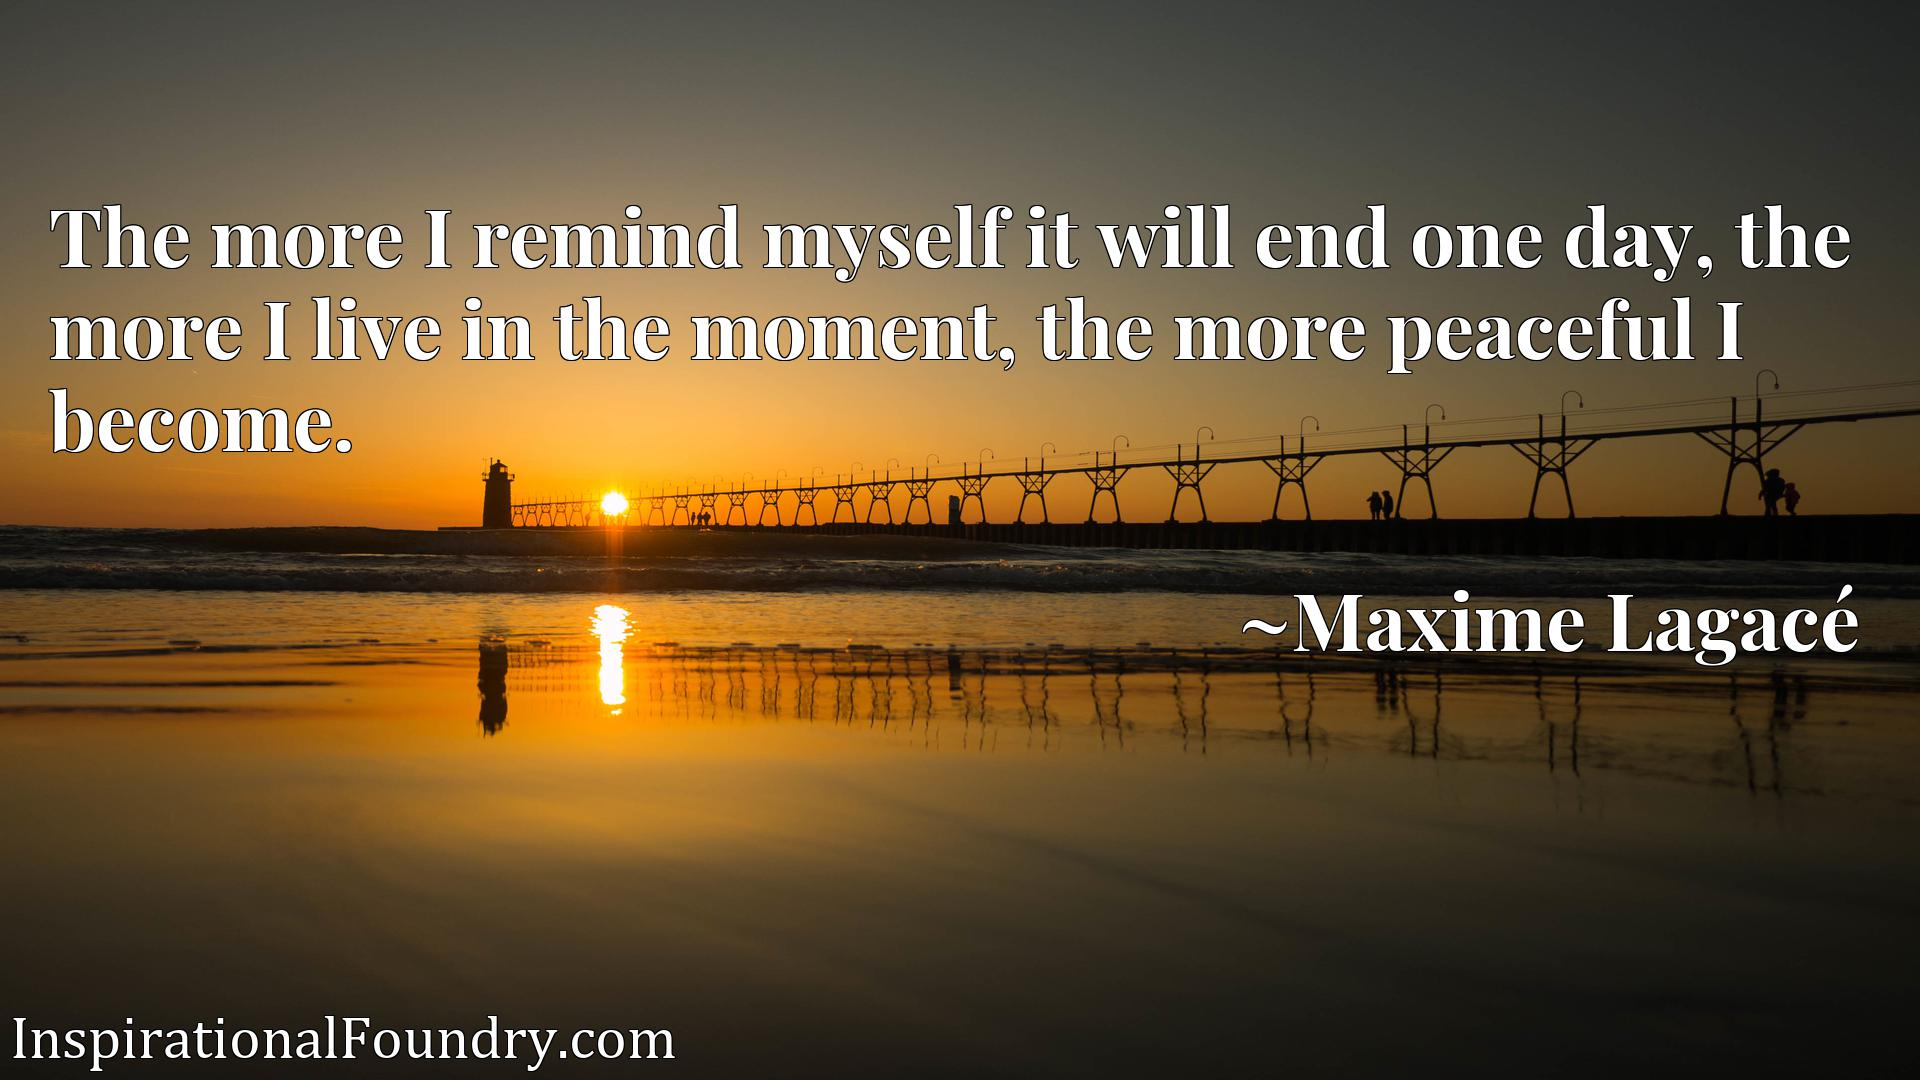 The more I remind myself it will end one day, the more I live in the moment, the more peaceful I become.